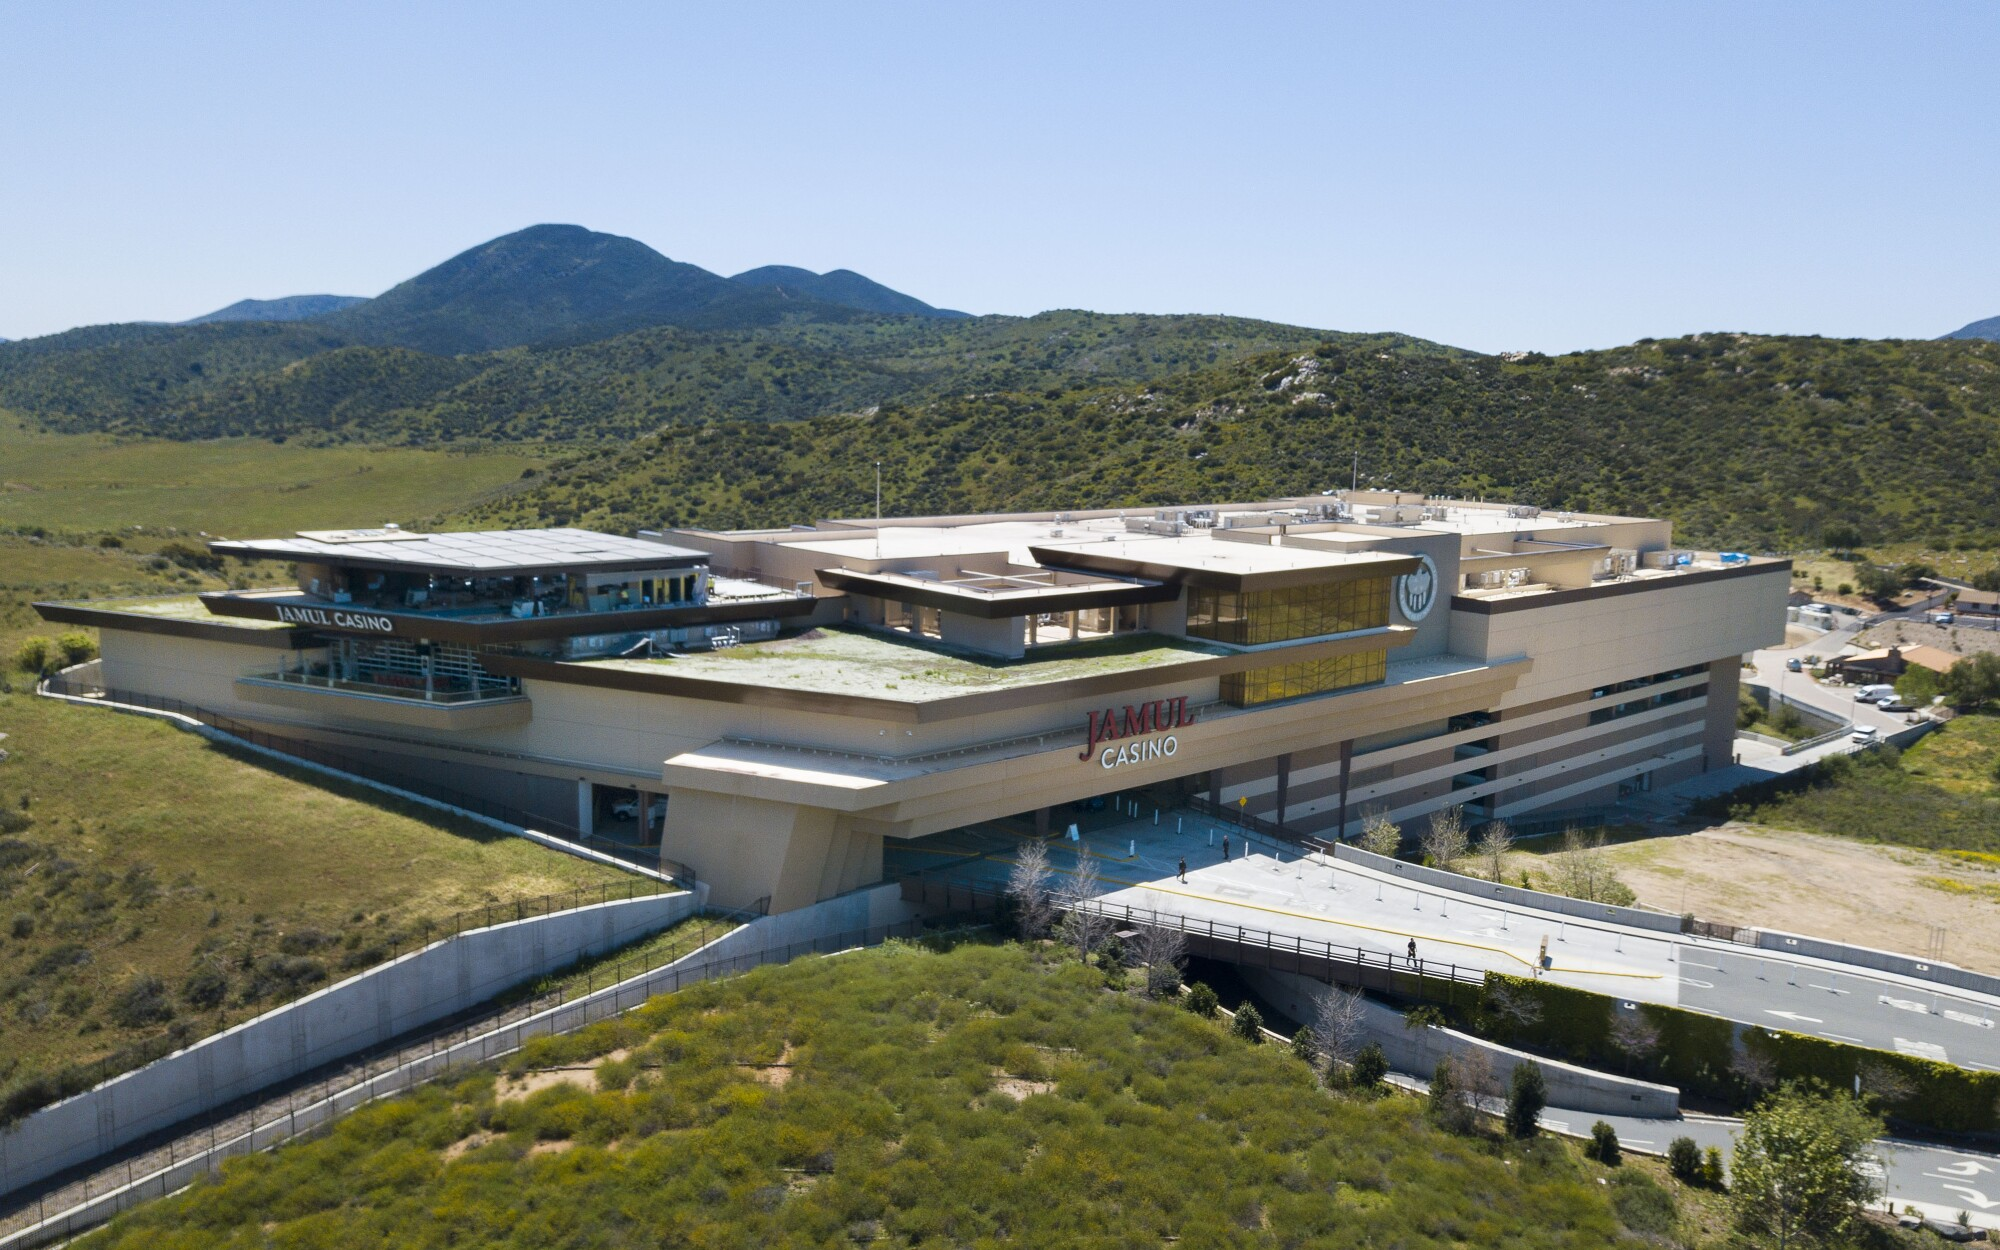 The Jamul Casino on the Jamul Indian Reservation is among a number of tribal casinos that have shut down because of Covid-19, shown here on April 15, 2020.